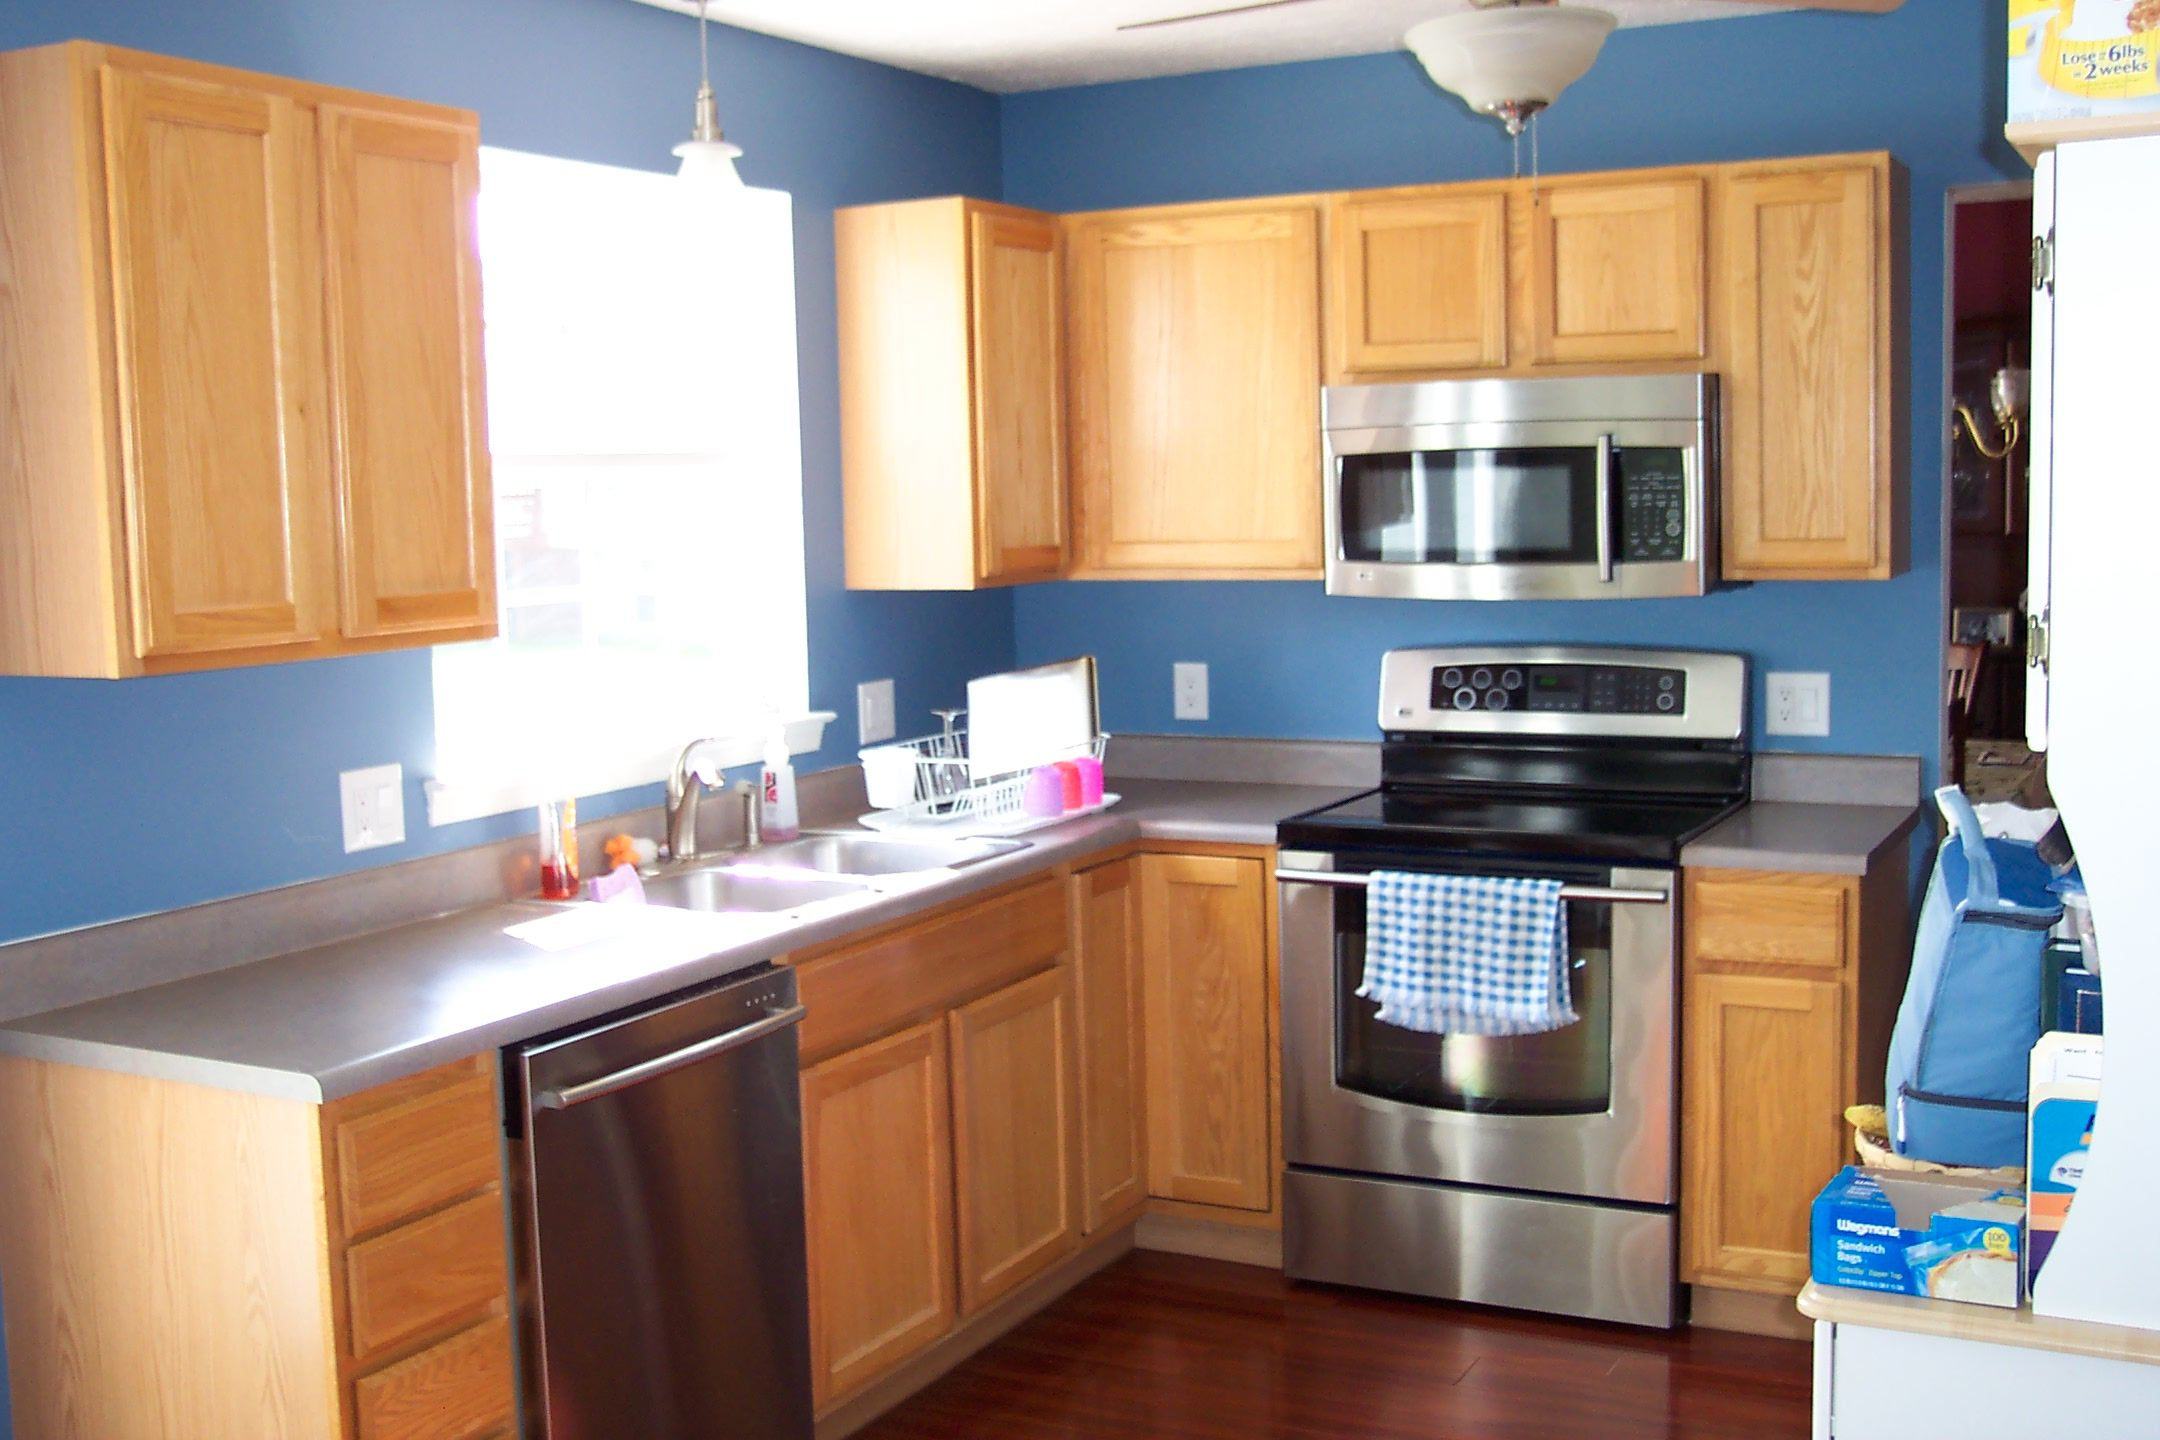 Blue Kitchen Walls Exellent Blue Kitchen Paint Colors And Wood Cabinets Brass